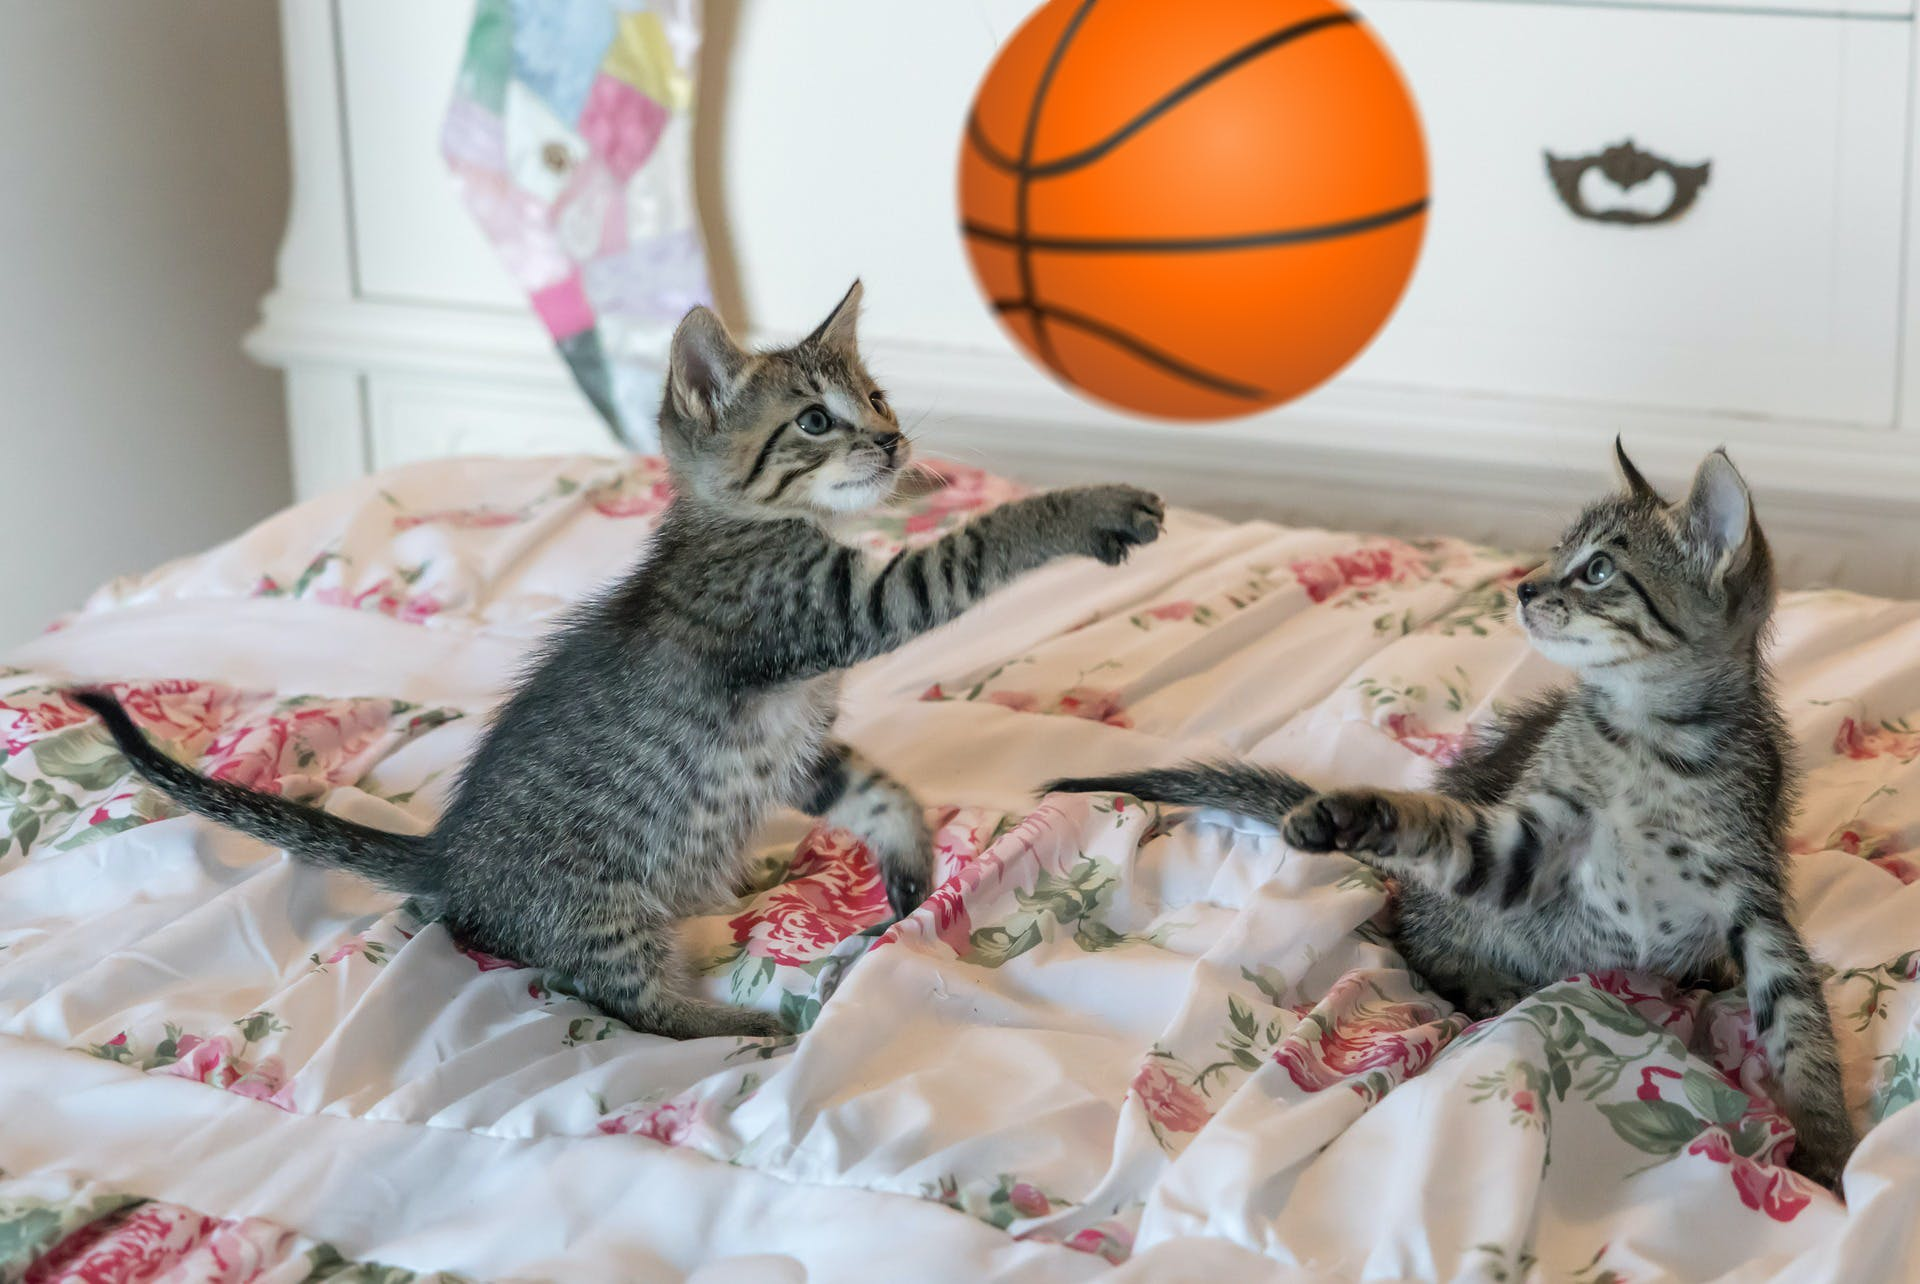 Here's some cats playing basketball